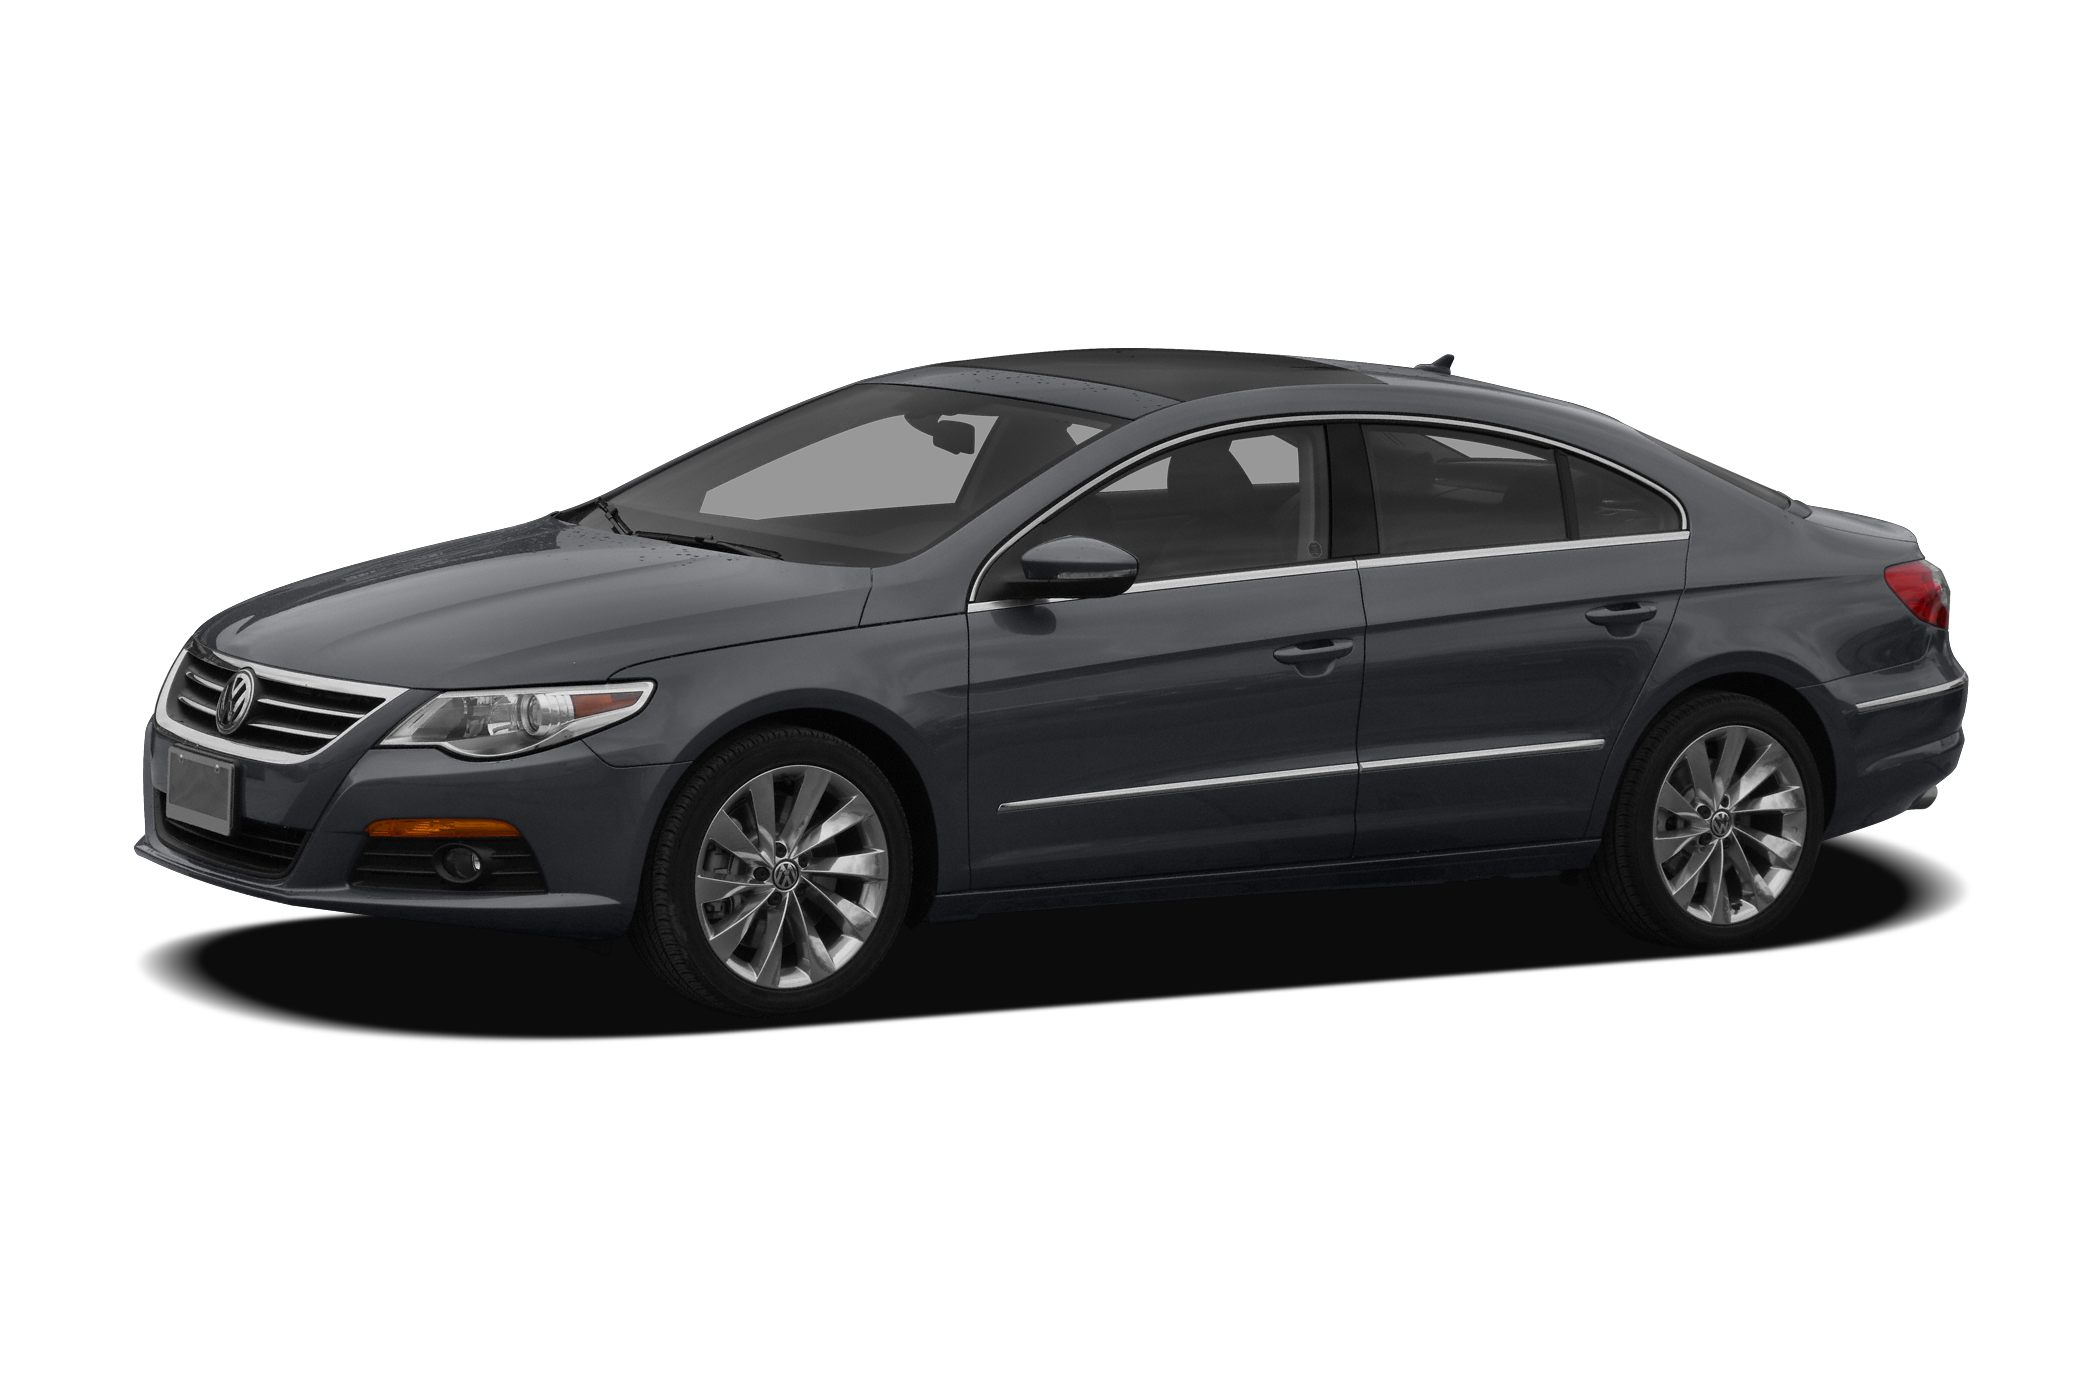 2012 Volkswagen CC Sport OUR PRICESYoure probably wondering why our prices are so much lower tha